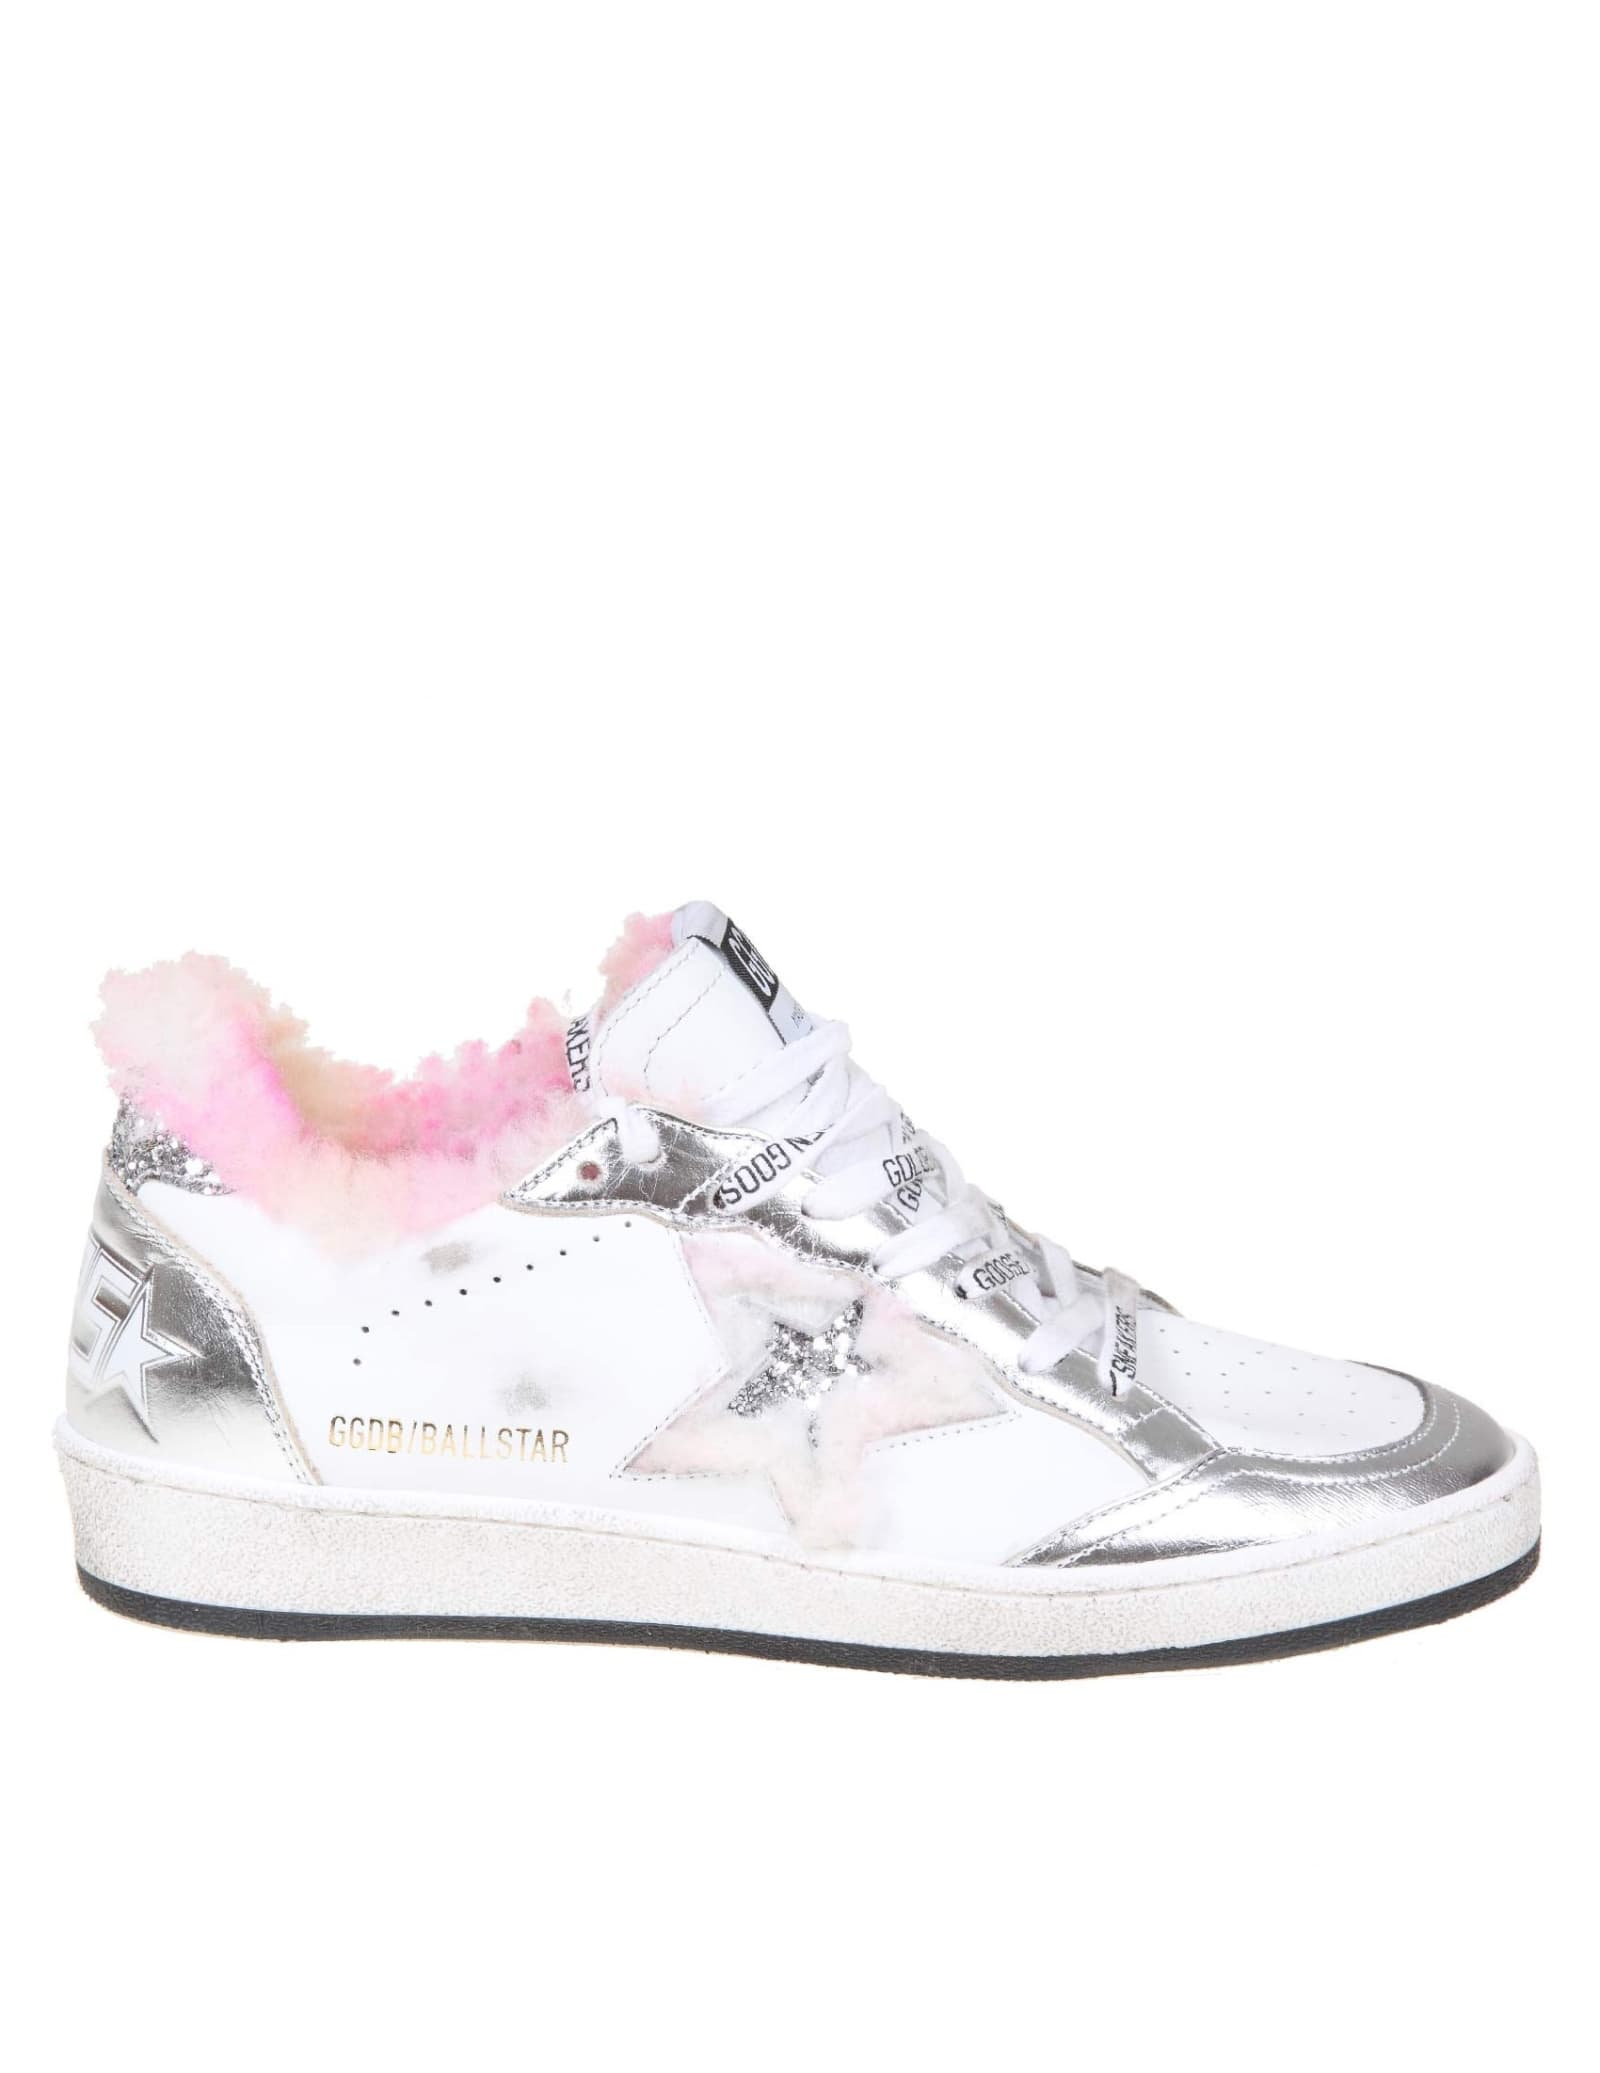 Golden Goose Ballstar Sneakers In Leather And Shearling